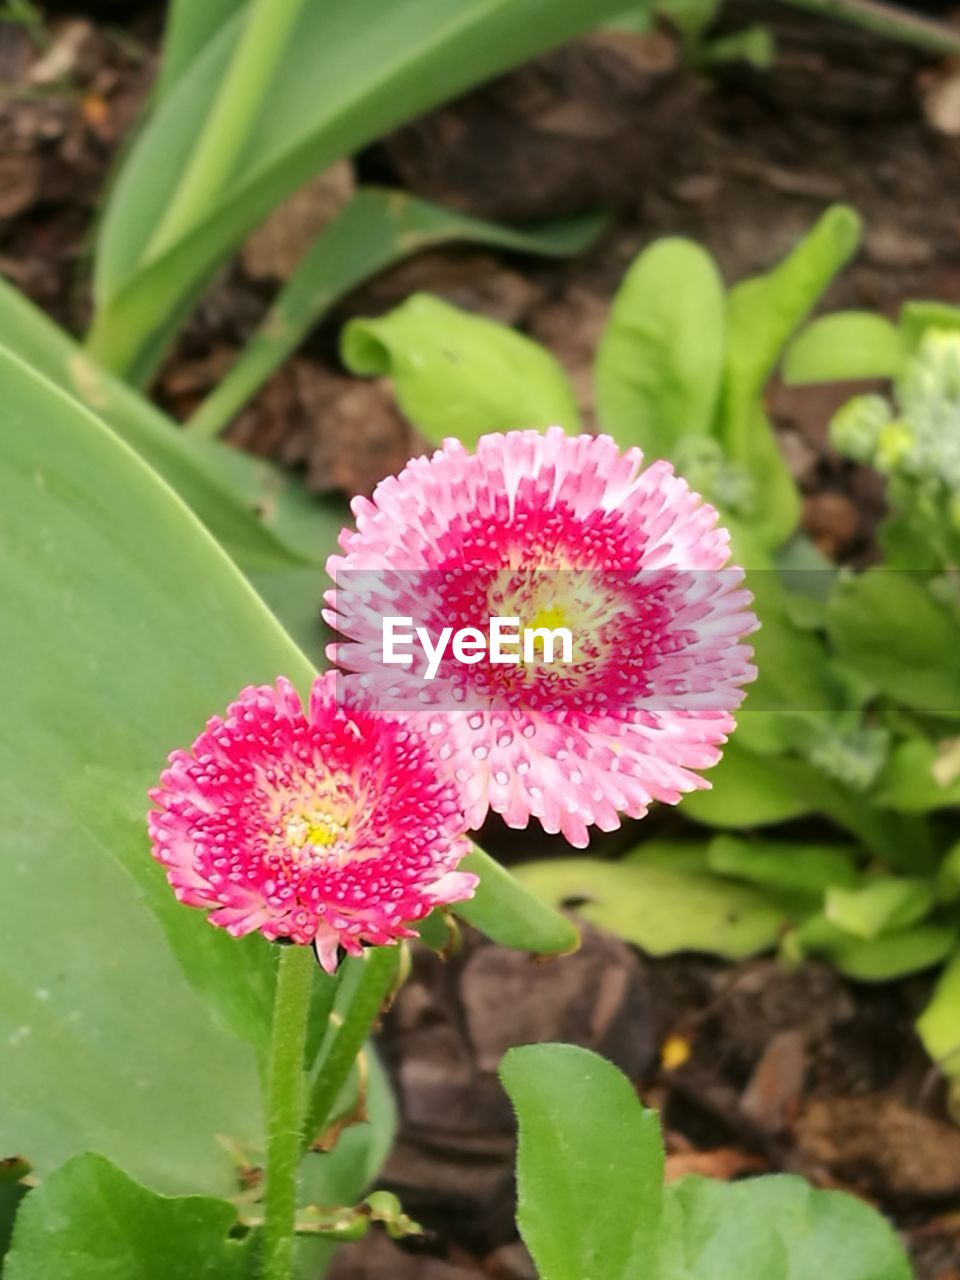 flower, growth, beauty in nature, pink color, nature, petal, freshness, leaf, plant, fragility, flower head, green color, day, close-up, outdoors, no people, blooming